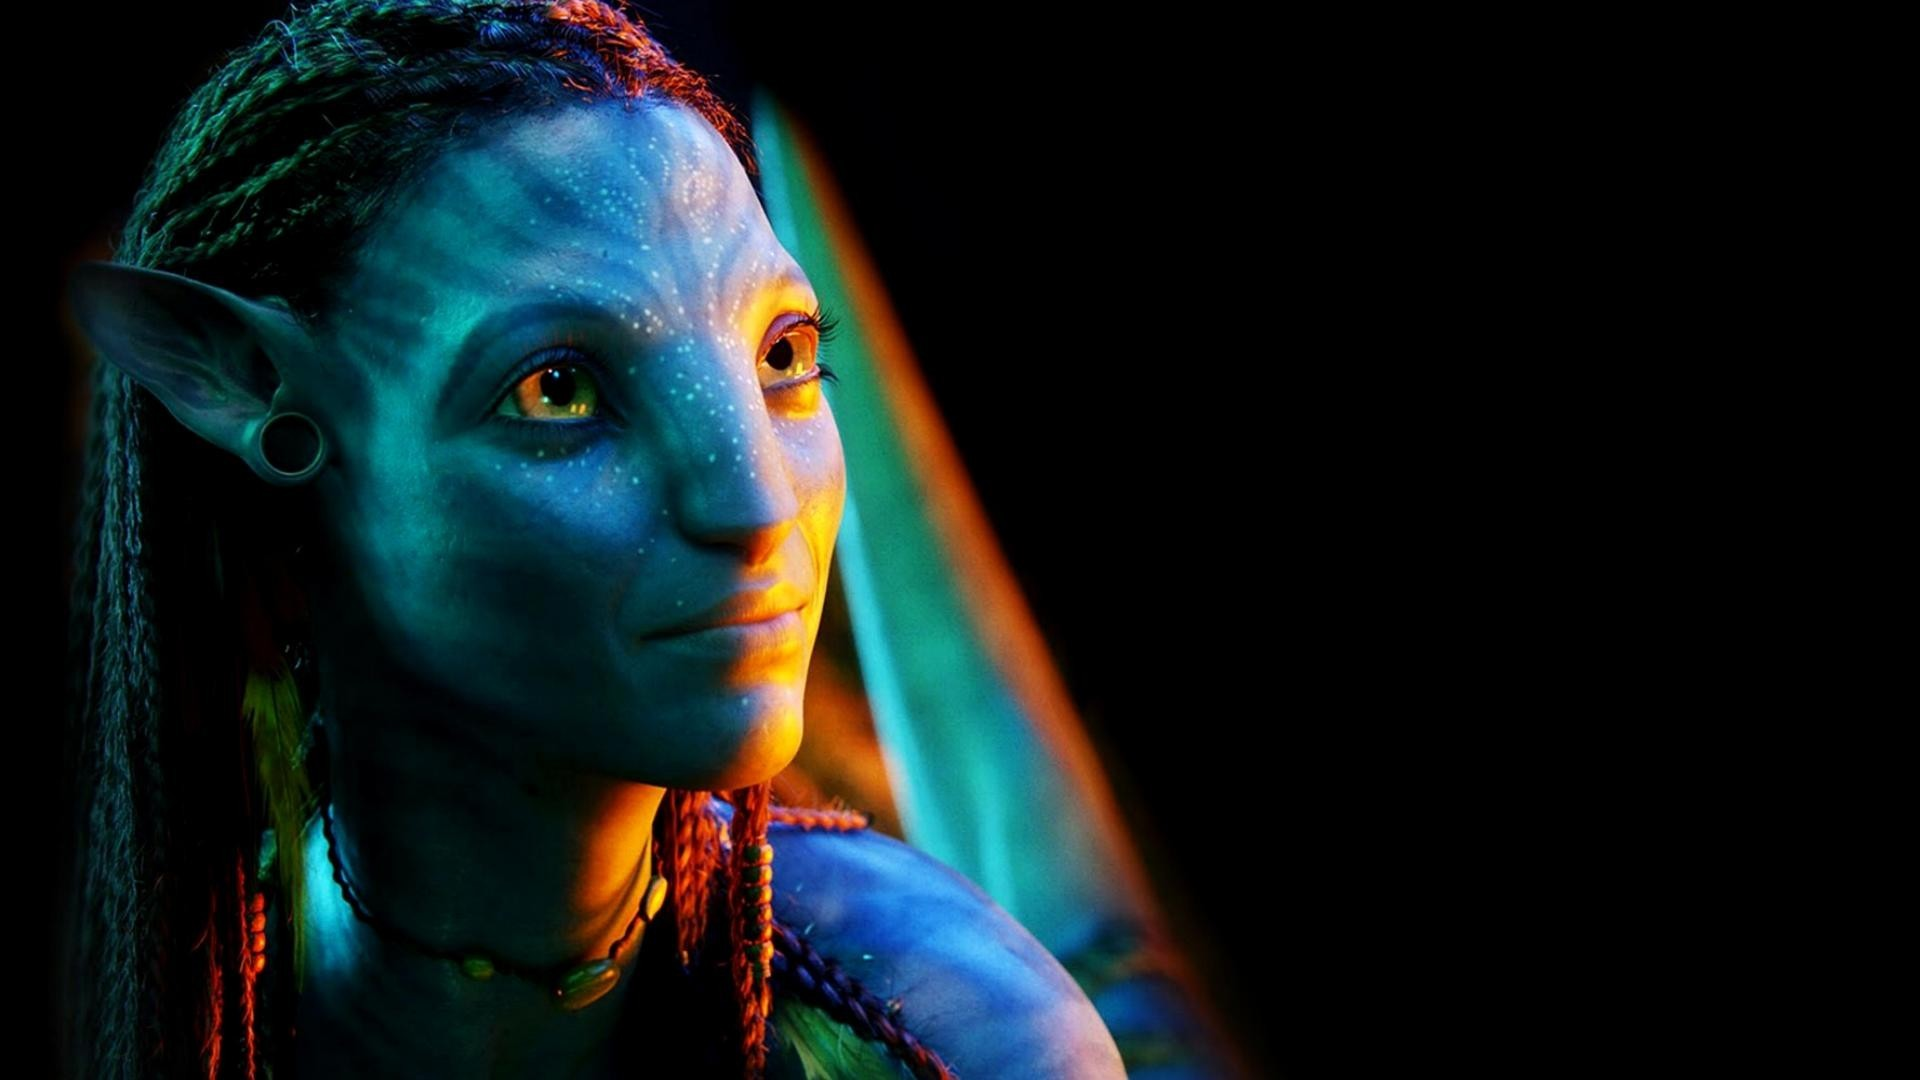 Free Hd Movie Download Point Avatar 2009 Free Hd Movie: Avatar Backgrounds, Pictures, Images